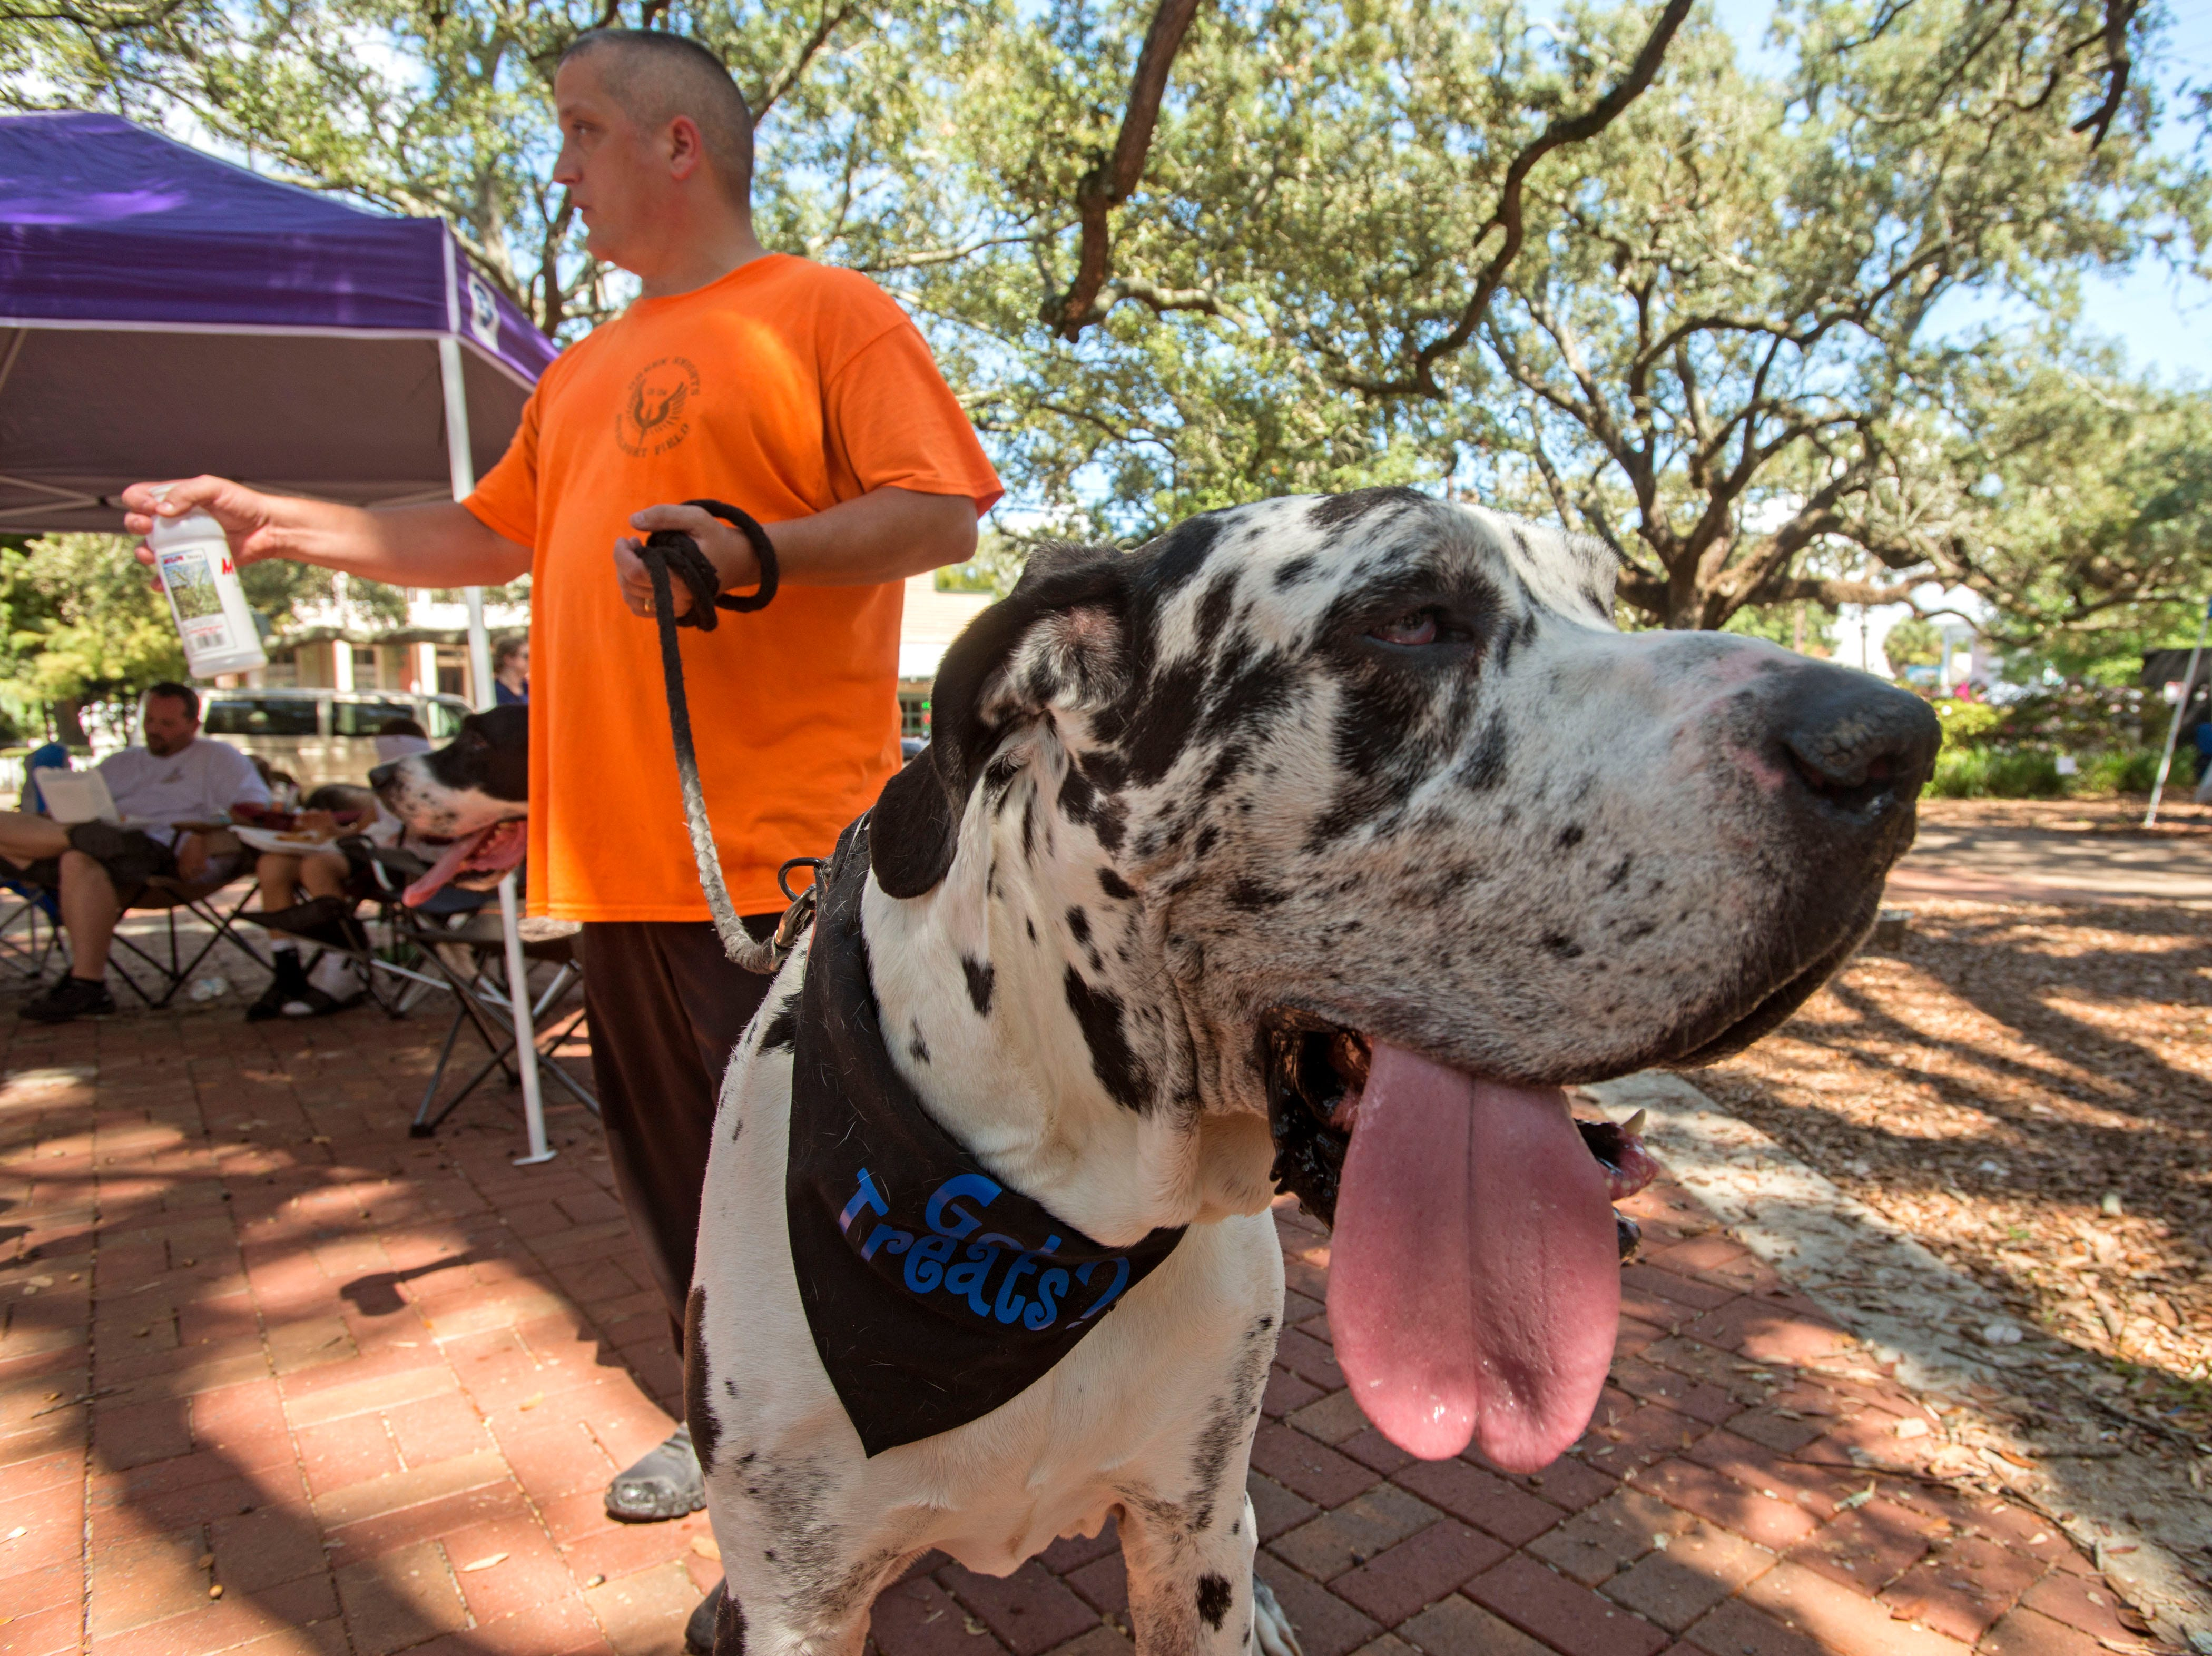 """""""Coach"""" checks out the vendors Saturday, October 6, 2018 during the third annual DaneTober Fest celebation and fundraising event at Seville Square. The event included music, per related merchandise,food and around two dozen aoptable Great Danes."""